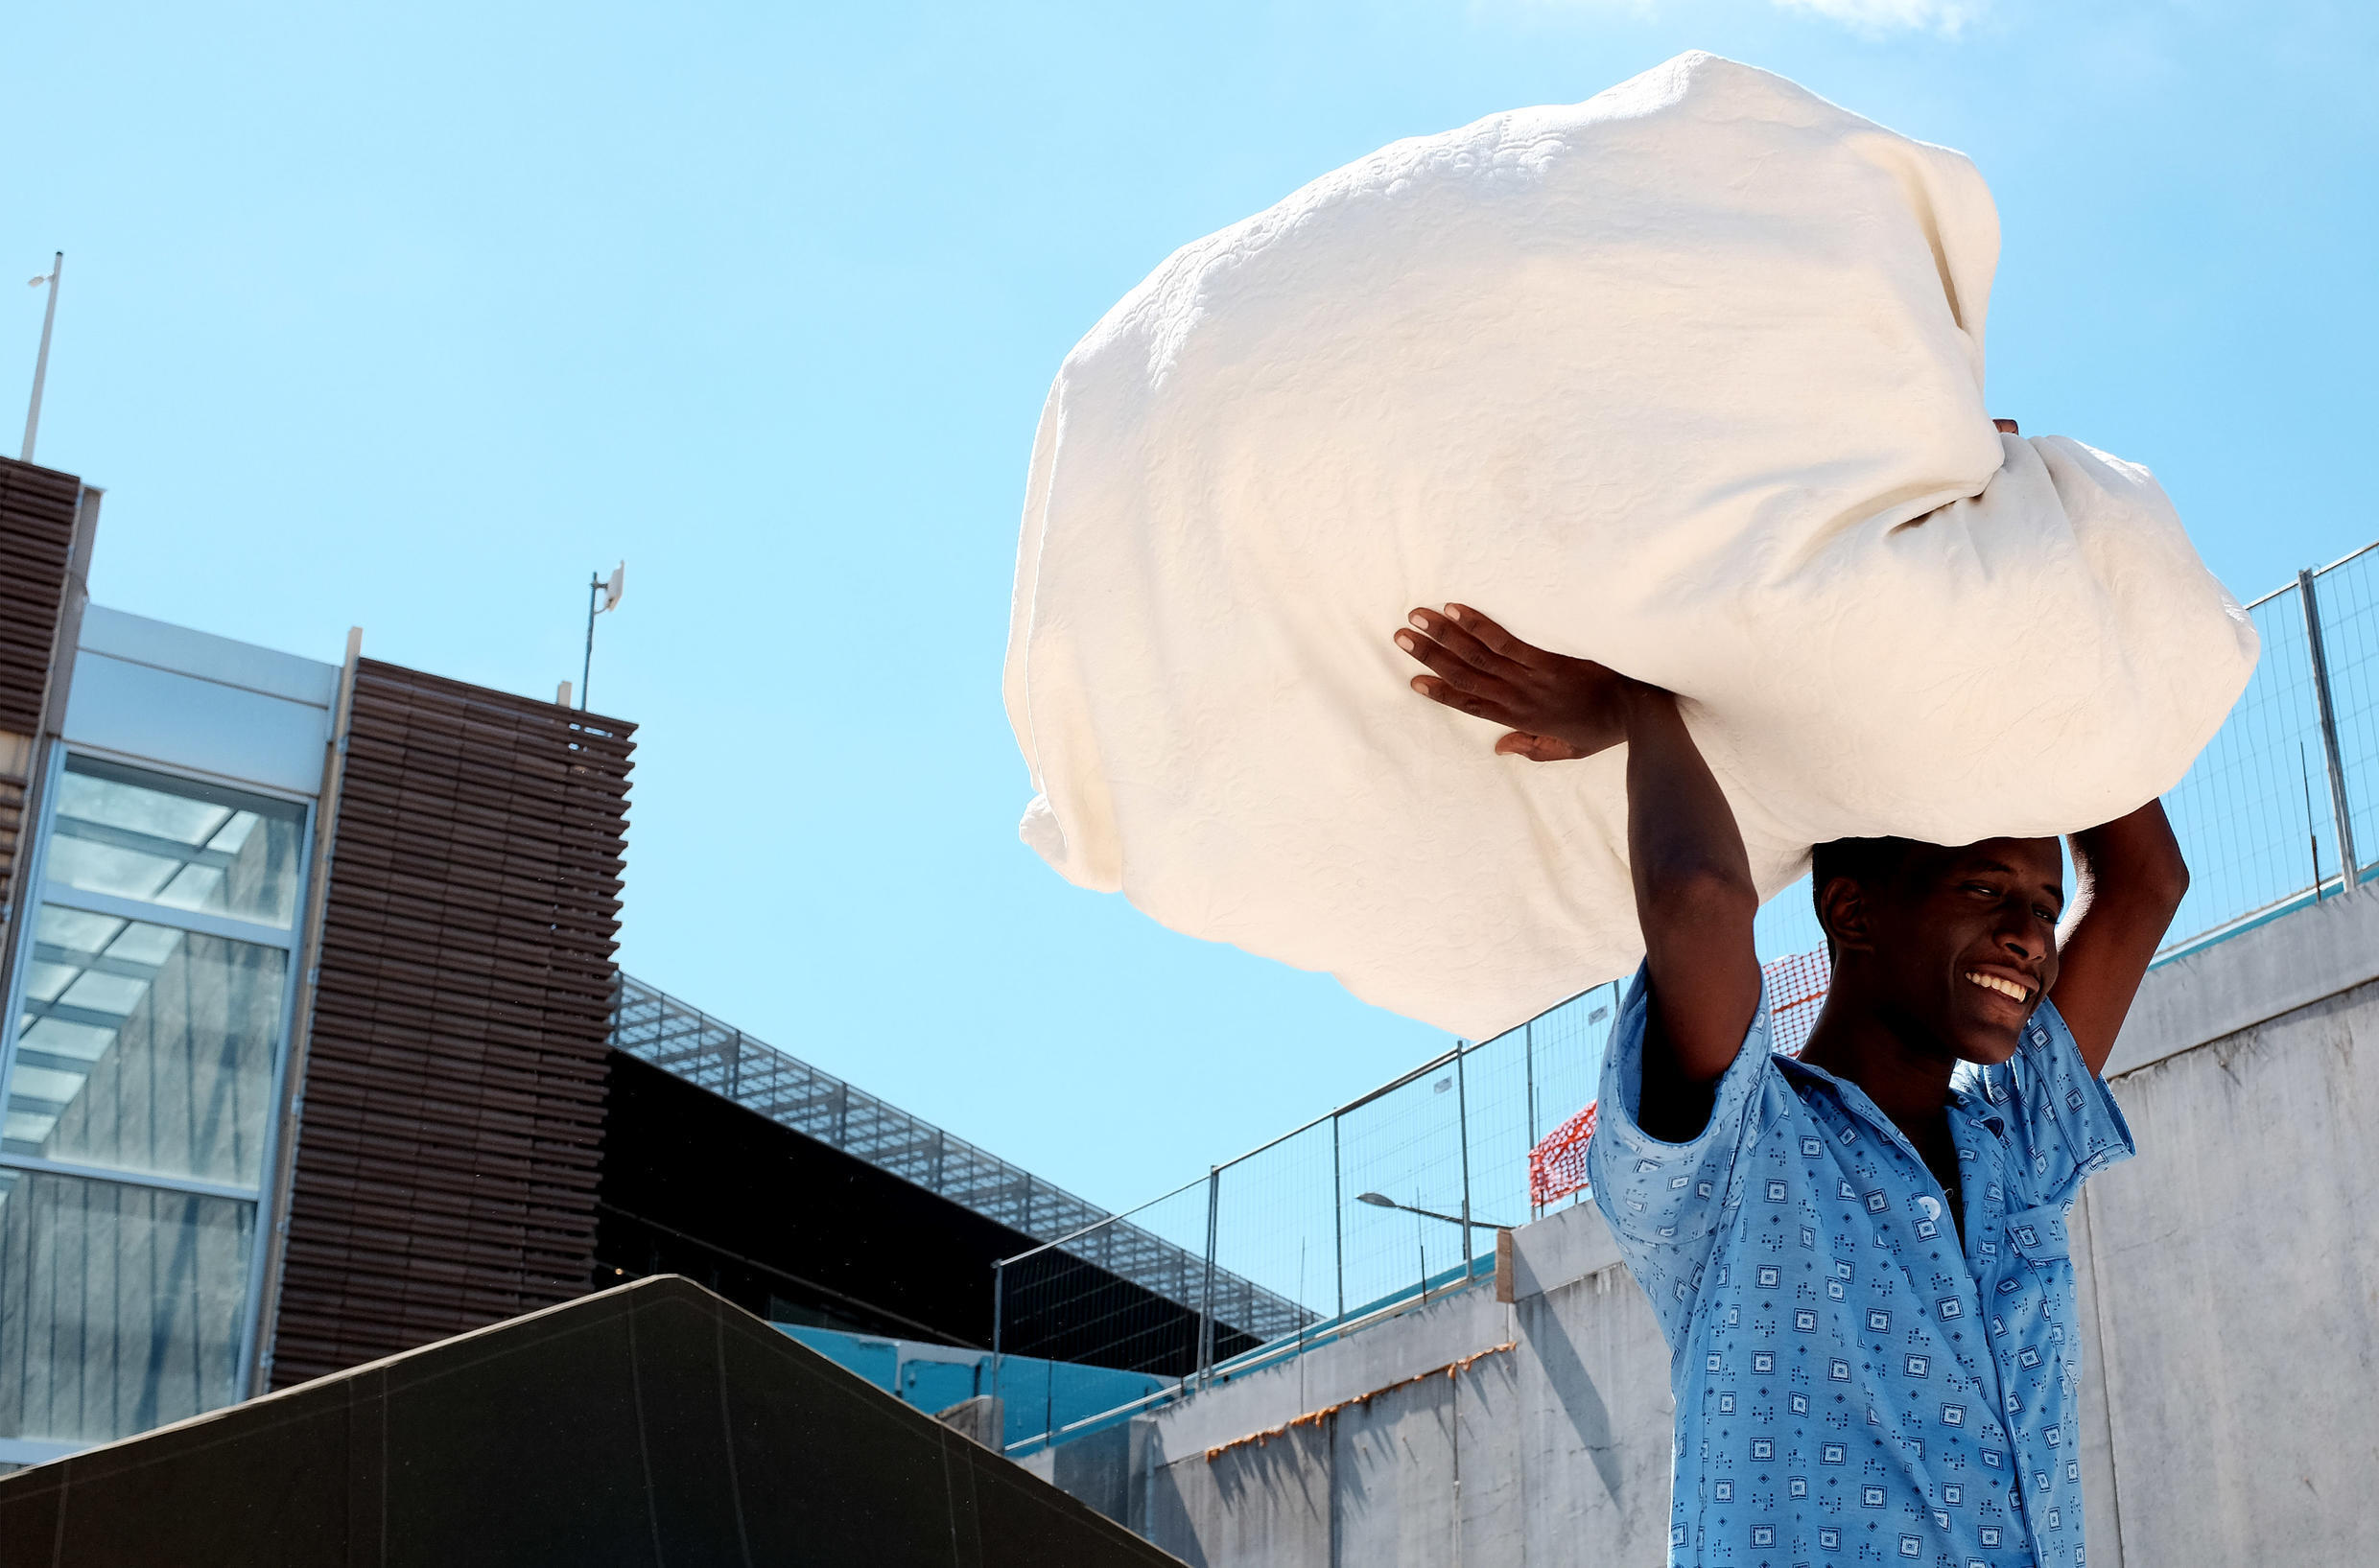 A migrant from Eritrea carries blankets at a refugee camp next to the Tiburtina train station in Rome.